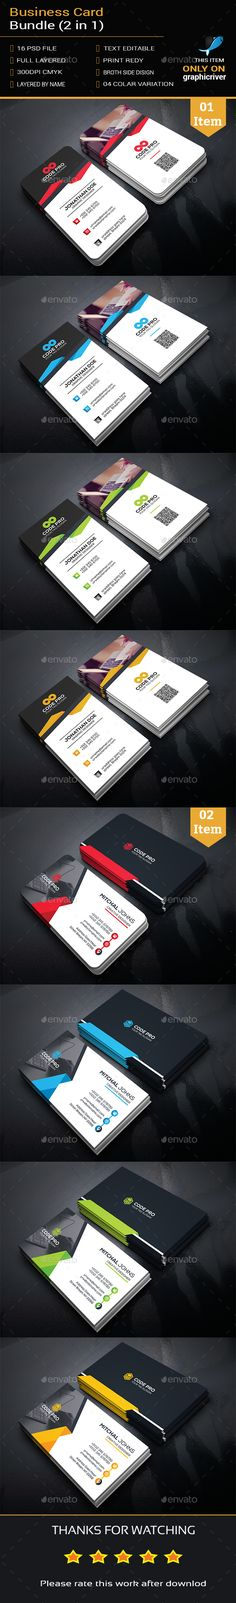 Business Card Bundle (2 in 1) Template PSD